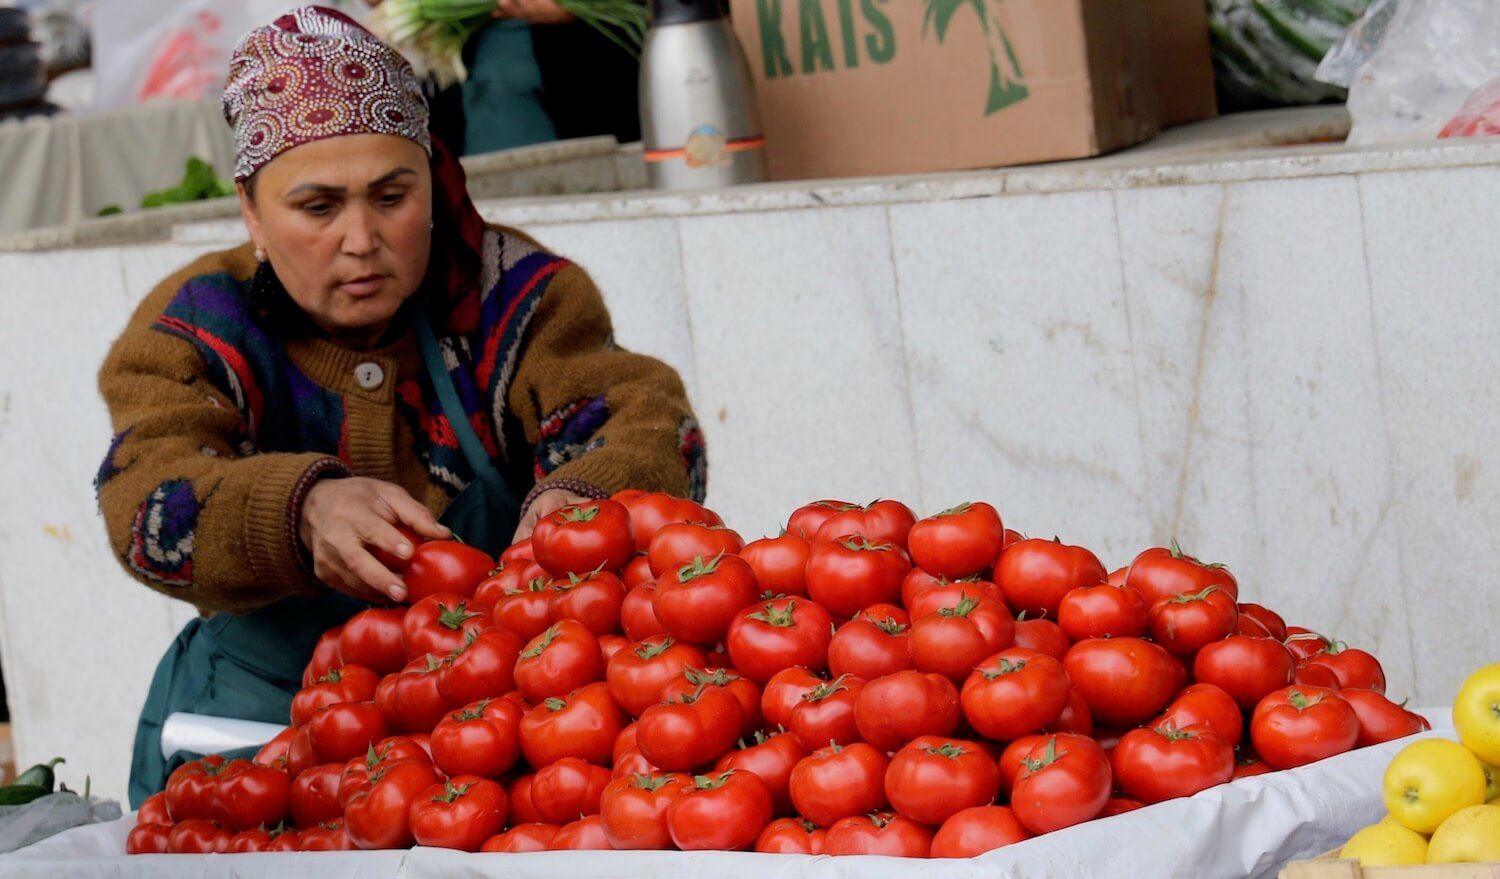 Woman with a mound of tomatoes for sale.